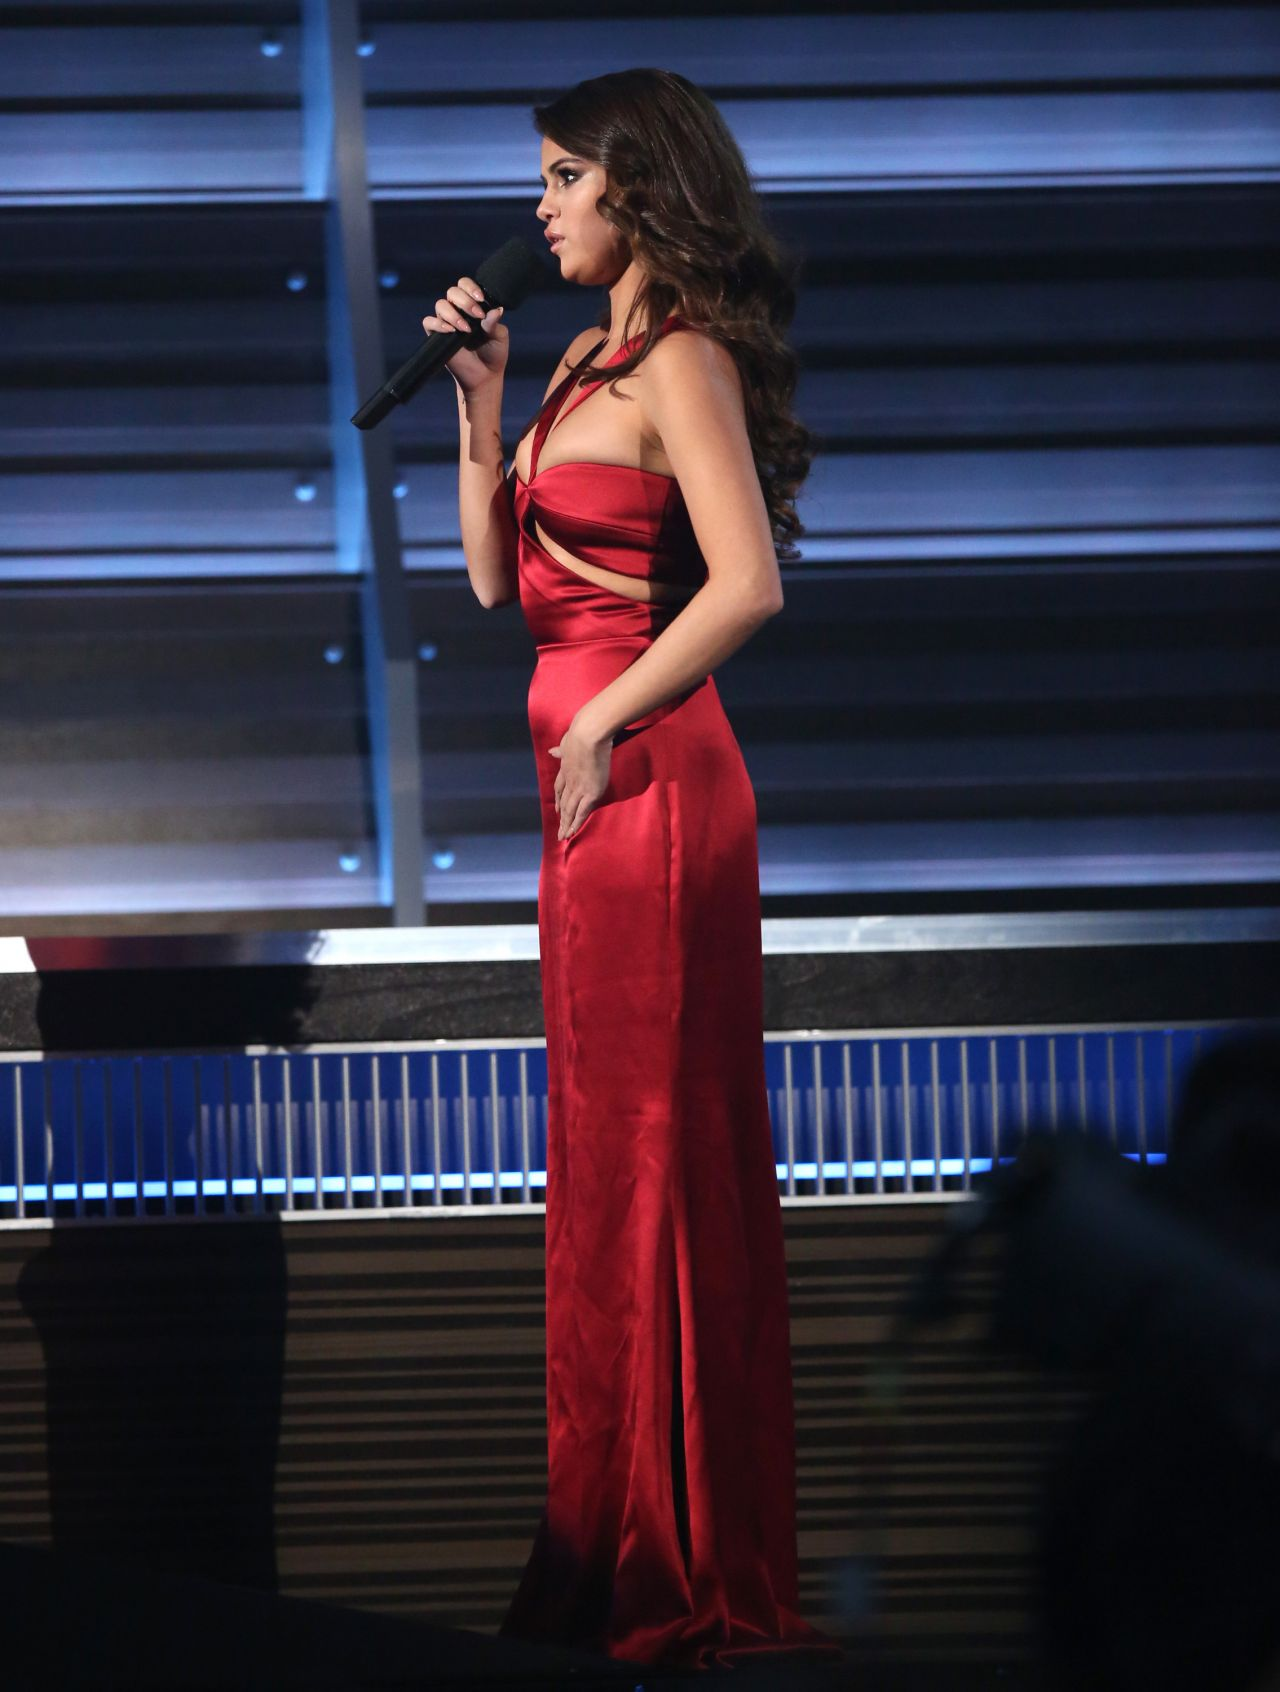 selena-gomez-grammy-awards-2016-staples-center-los-angeles-2-15-2016-2